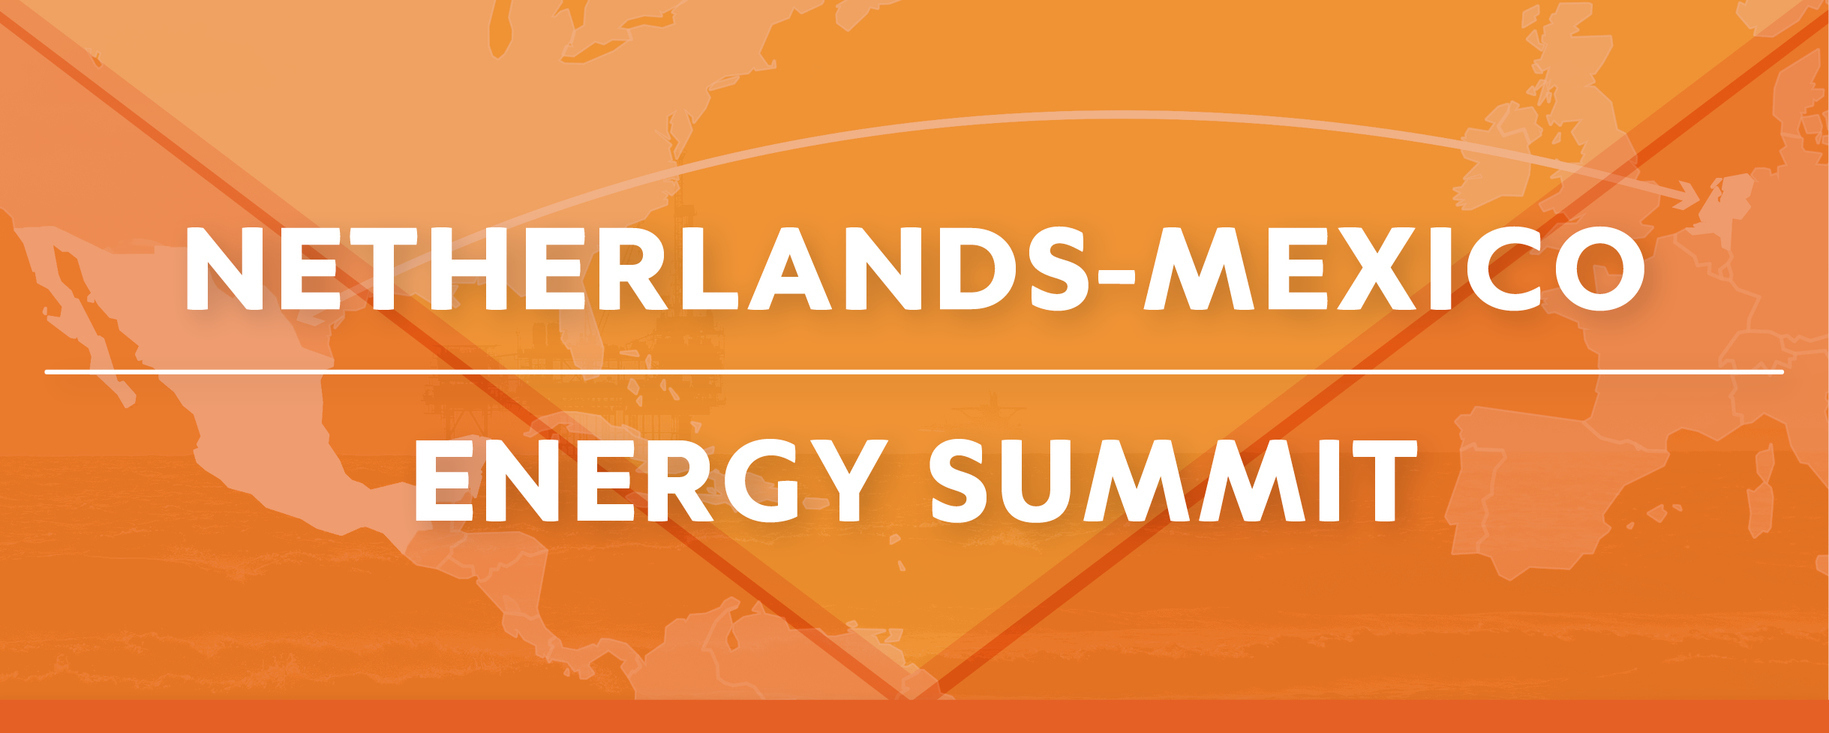 Presentations Netherlands-Mexico Energy Summit available